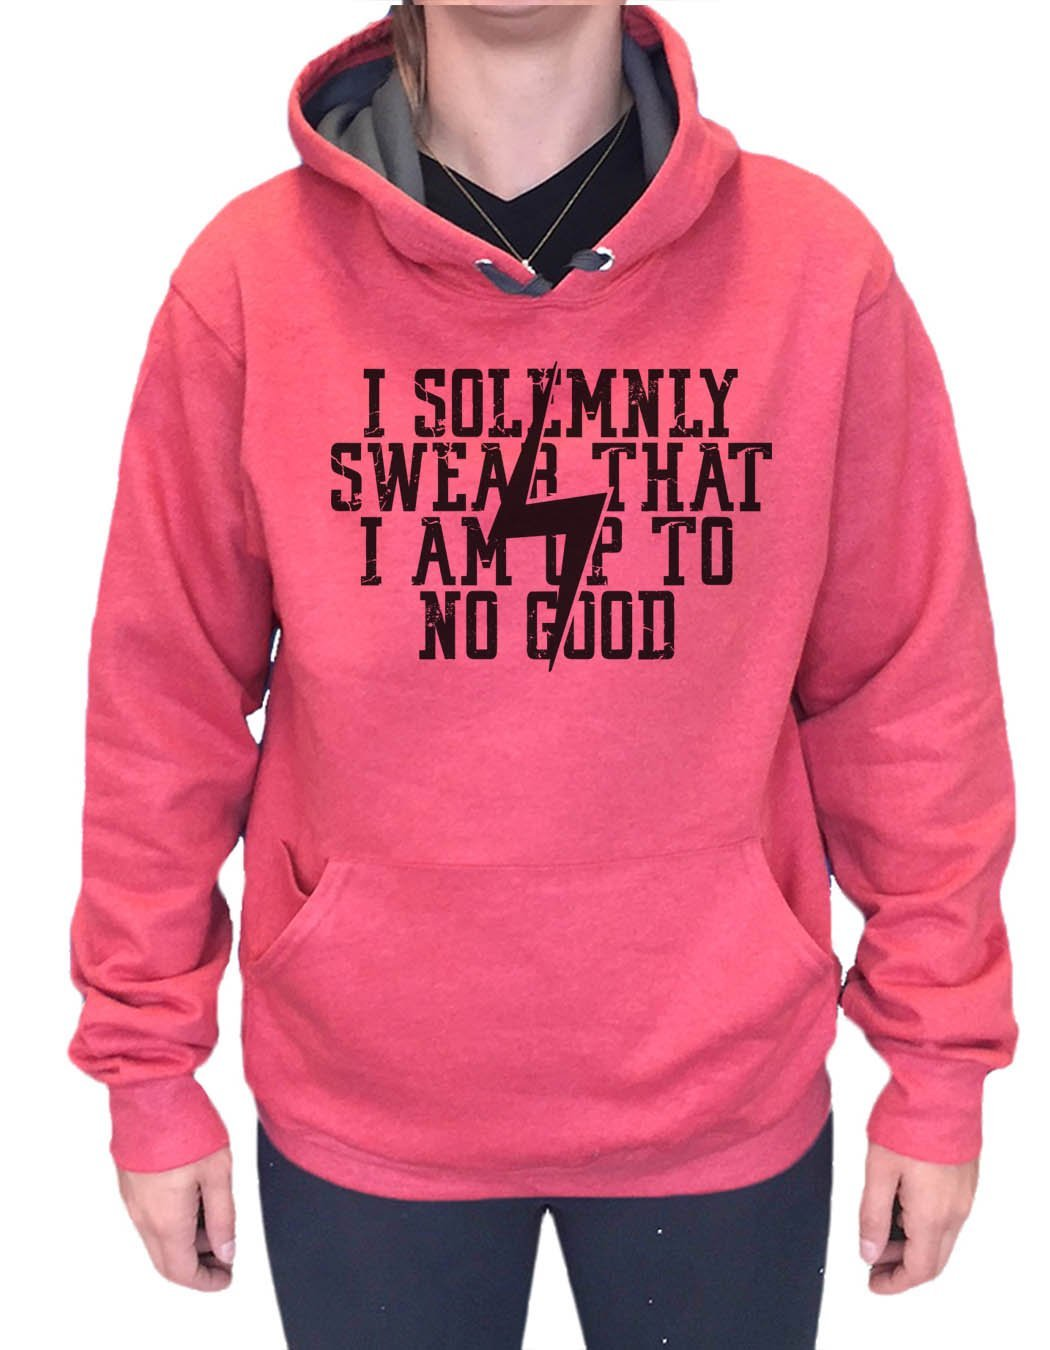 UNISEX HOODIE - I Solemnly Swear That I Am Up To No Good - FUNNY MENS AND WOMENS HOODED SWEATSHIRTS - 2136 Funny Shirt Small / Cranberry Red